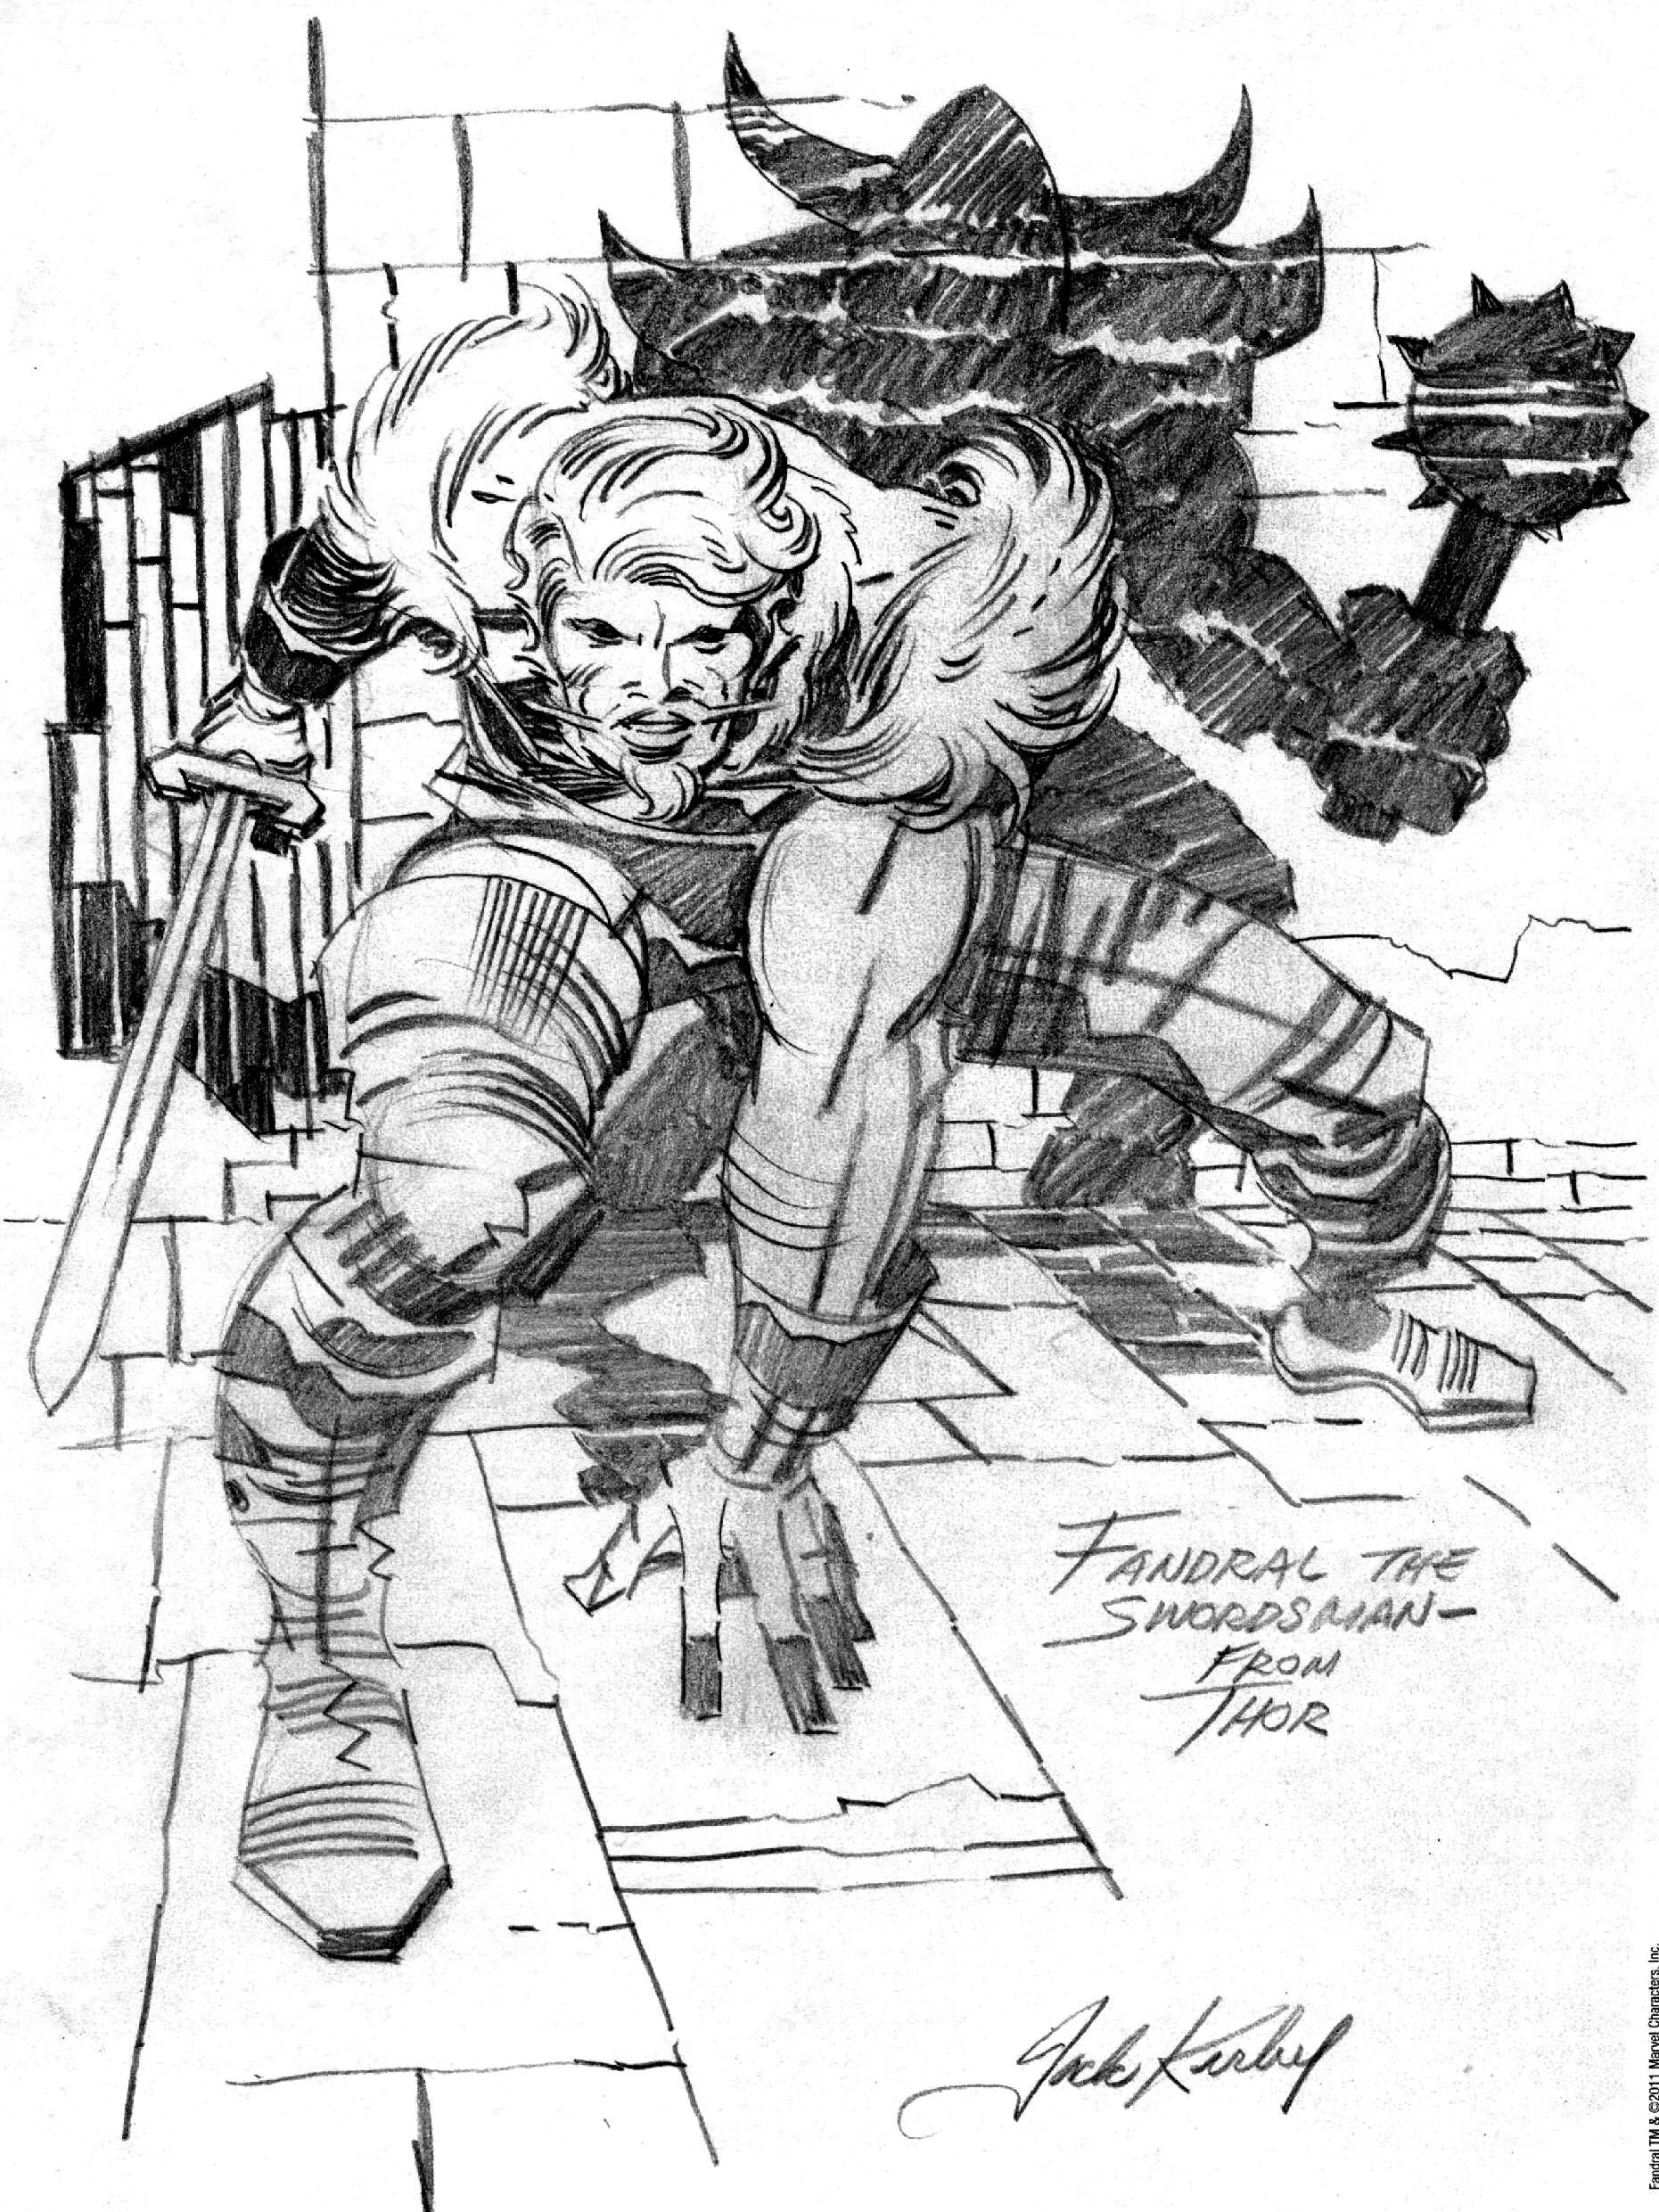 Fandral sketch from the Jack Kirby Collector, #57 | drawing | Pinterest